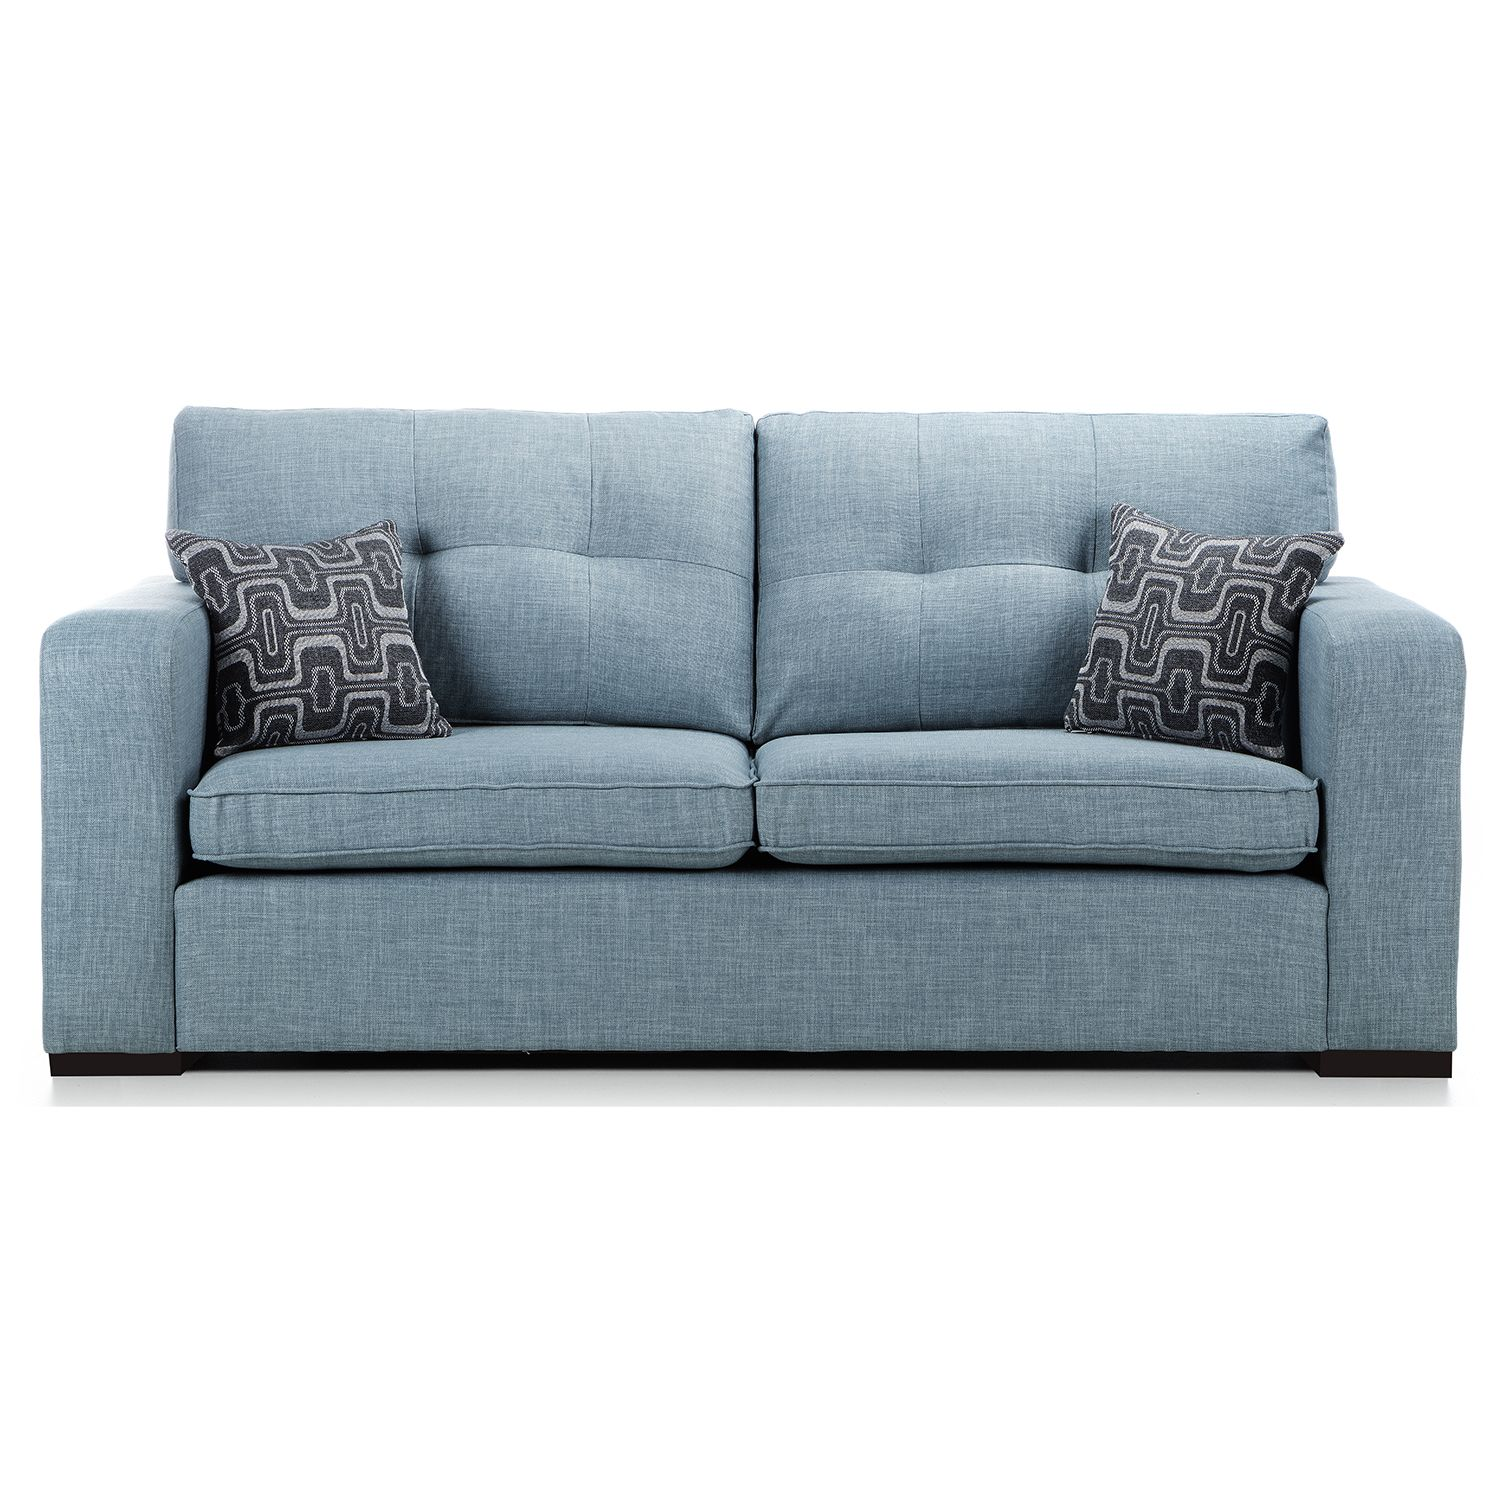 sofa bed next day delivery london rv sleeper mattress sofas contemporary in leather fabric modern